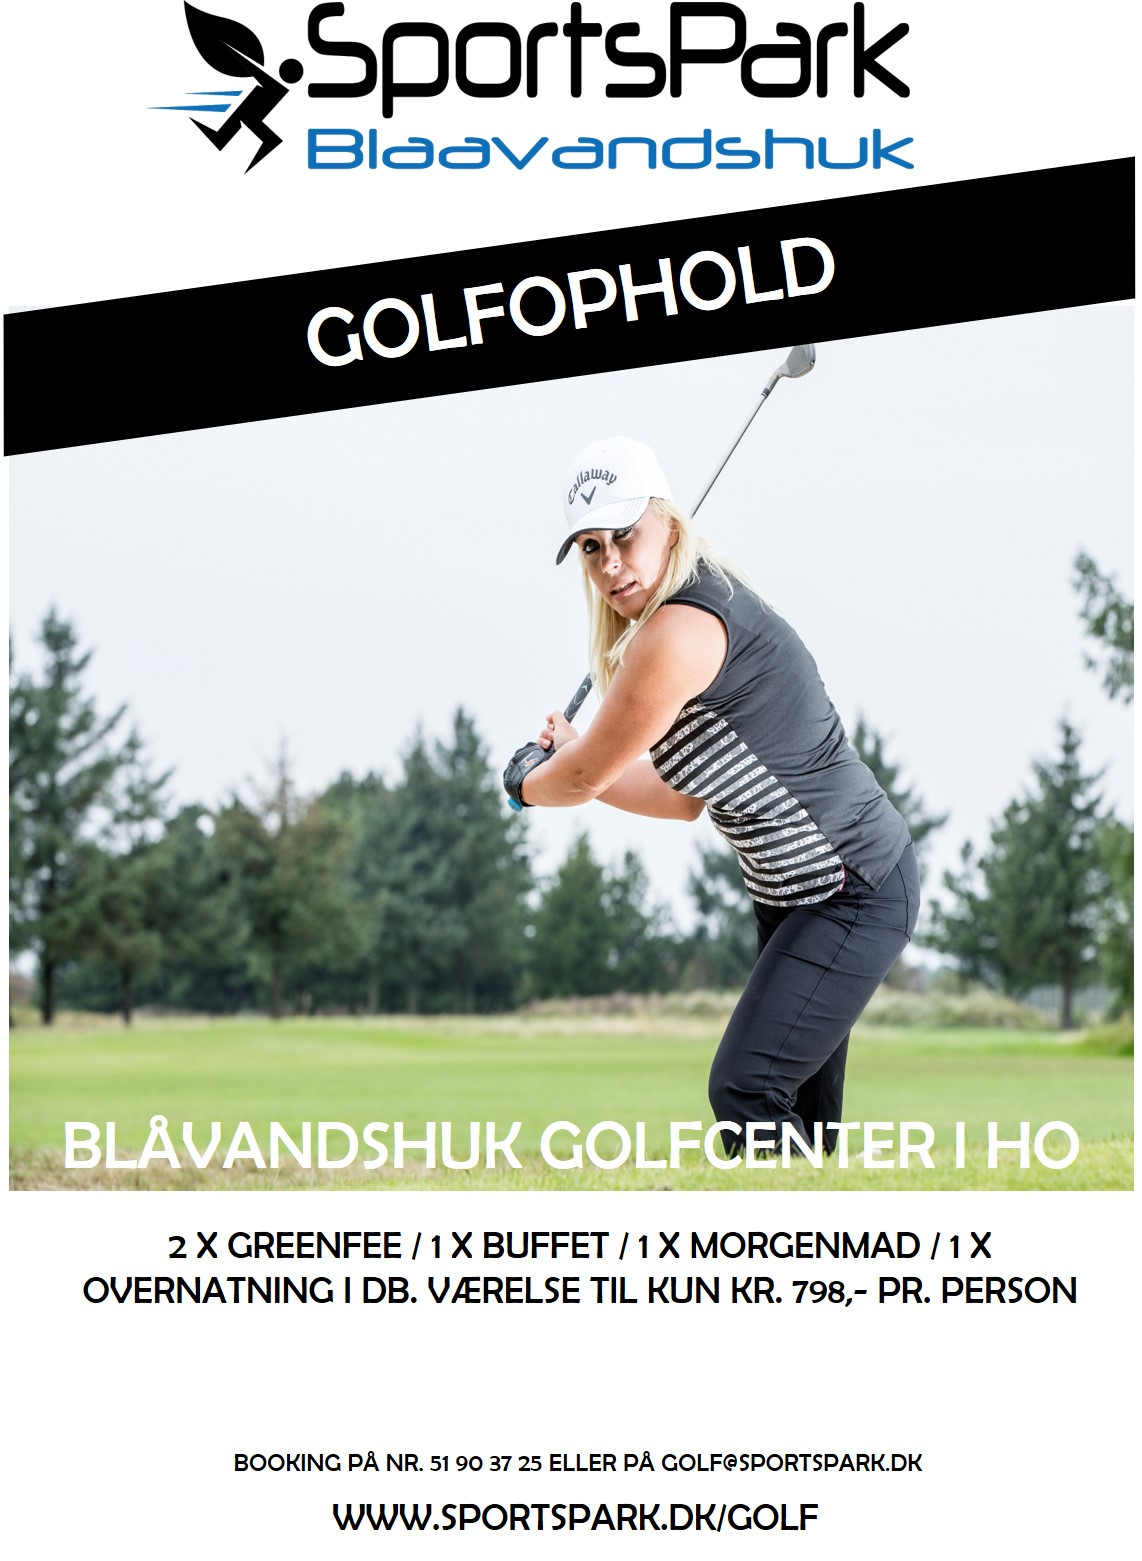 Golfophold folder jpg side 1